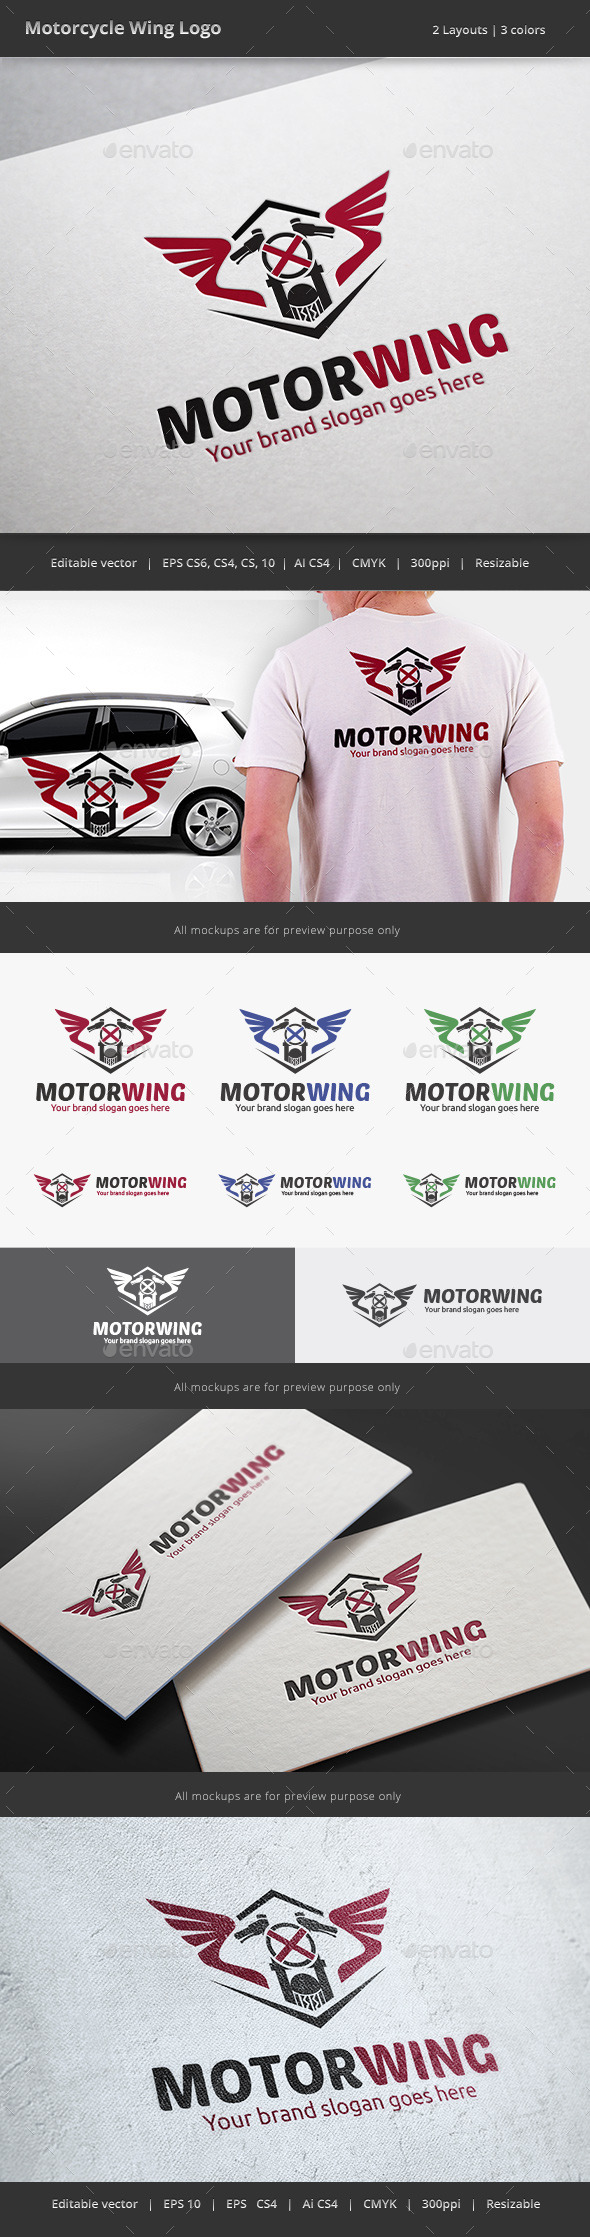 GraphicRiver Motorcycle Wing Logo 8973297